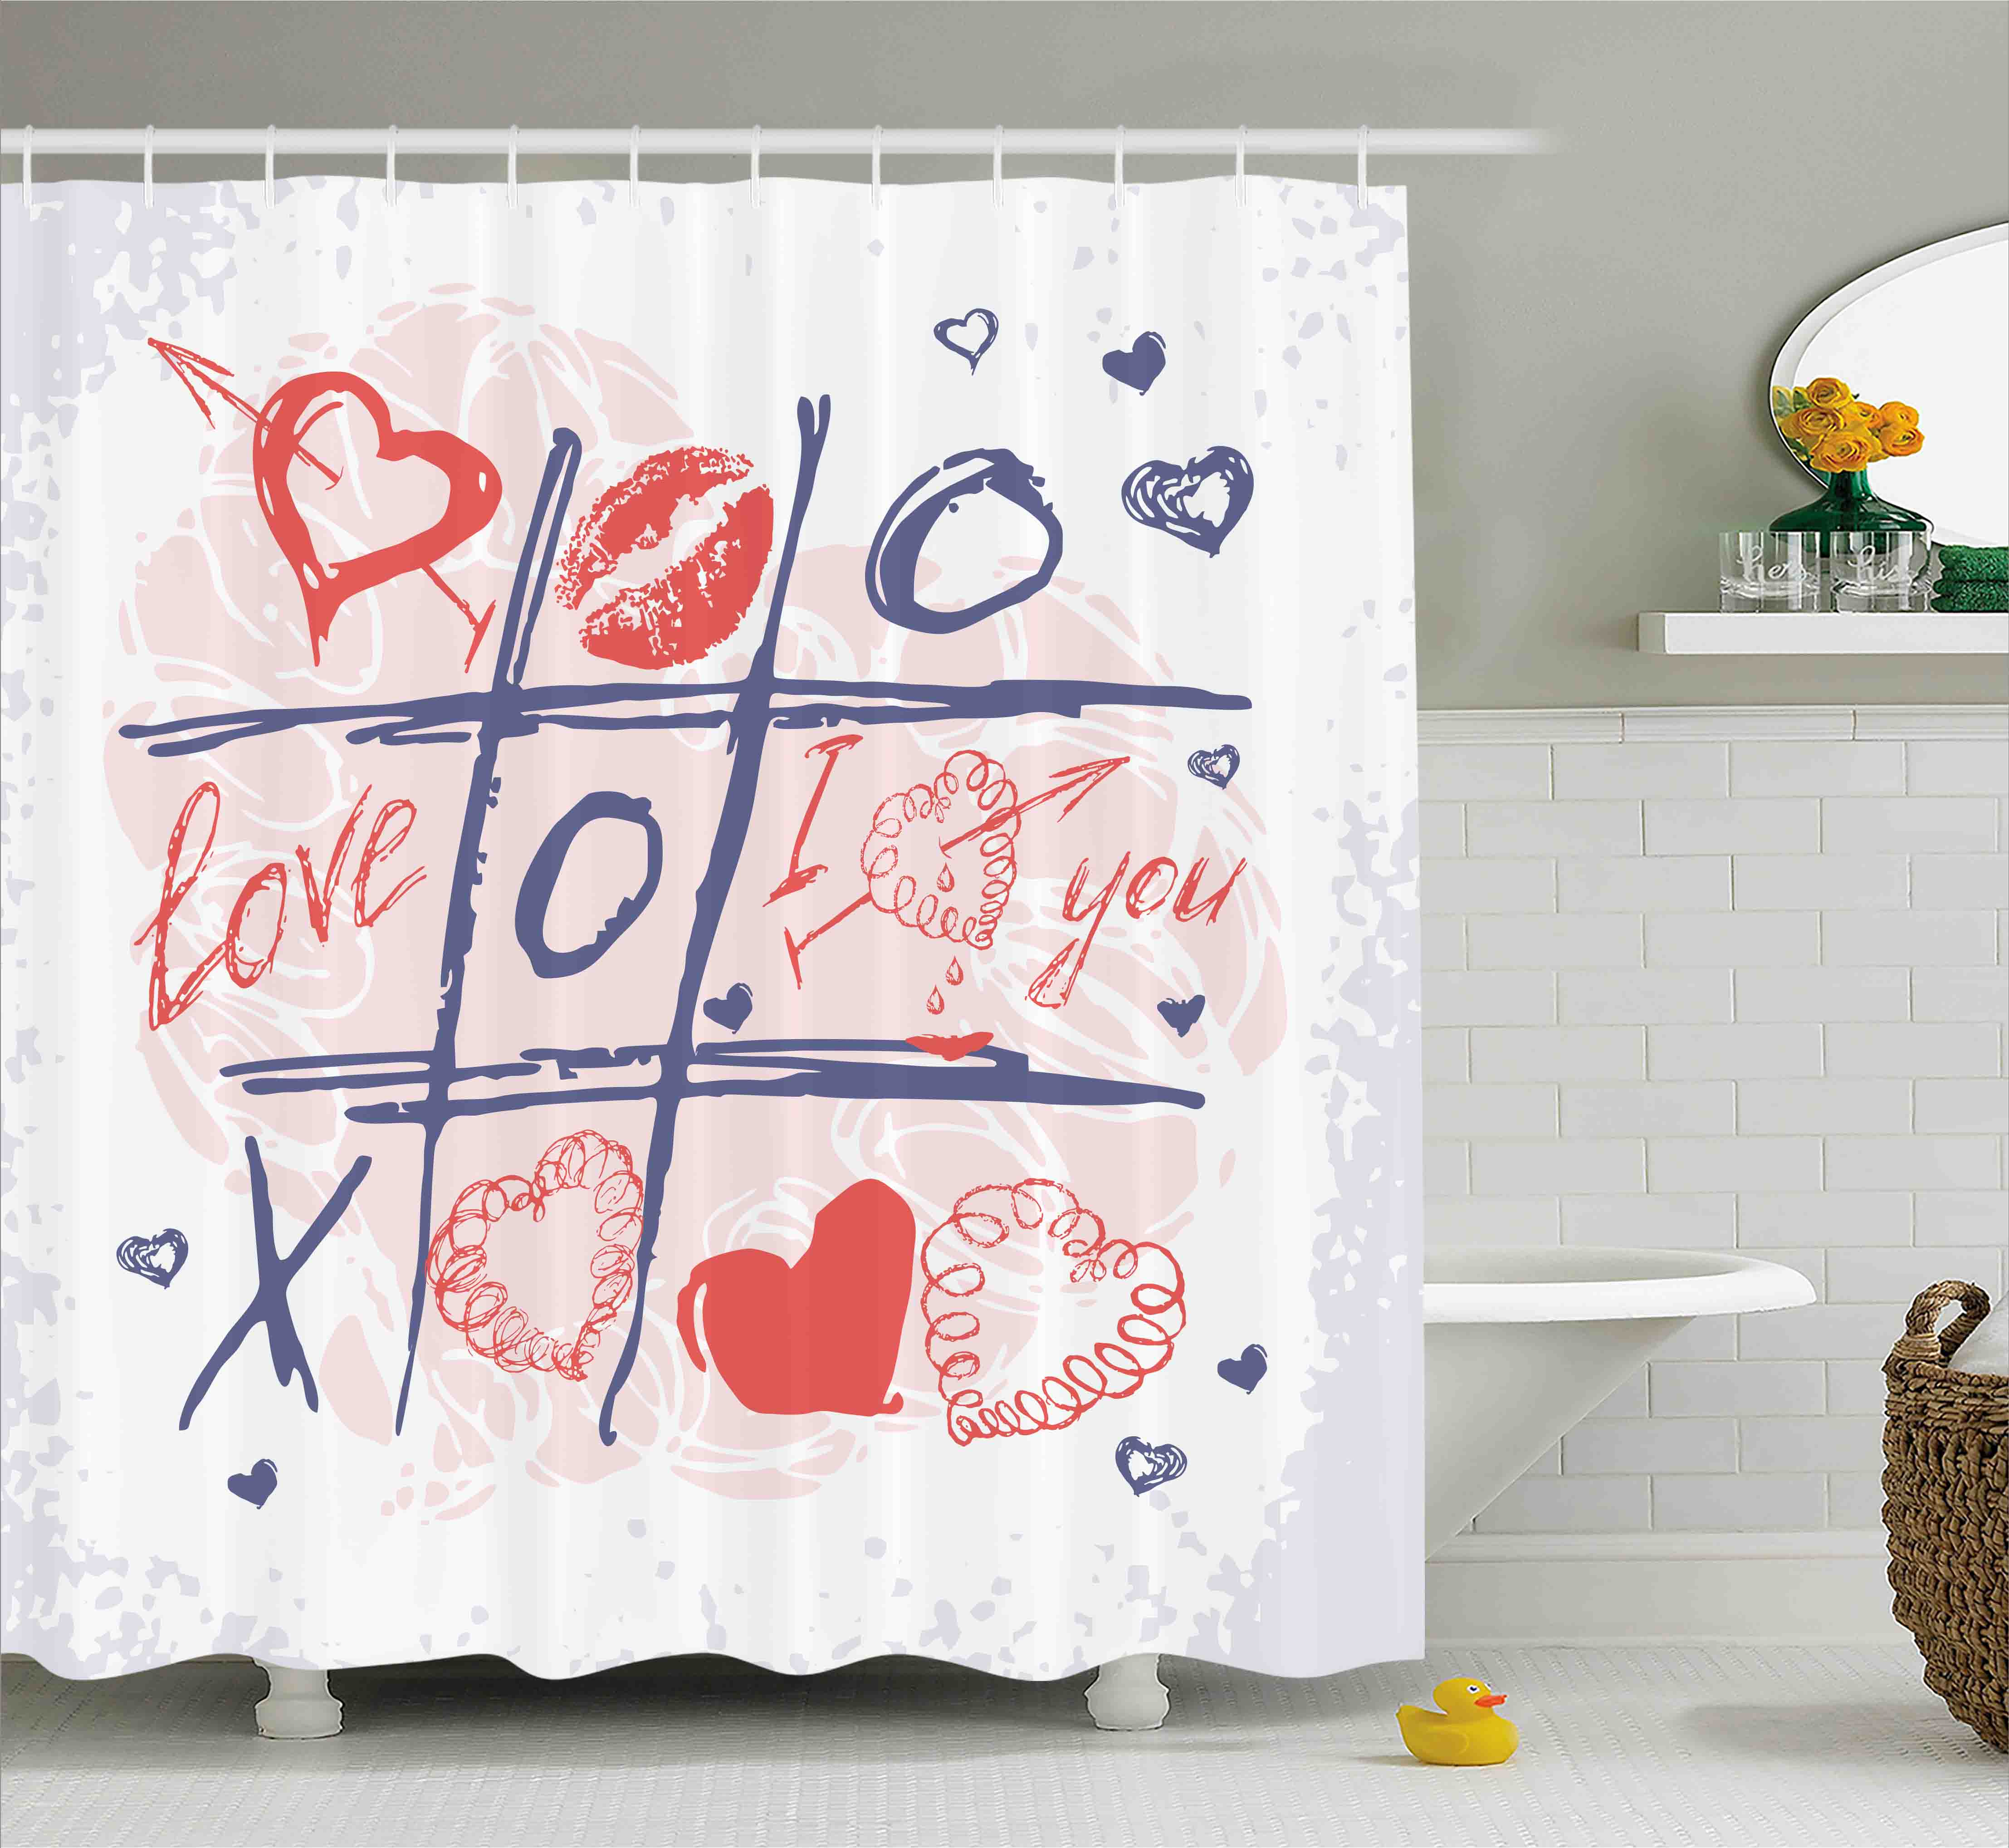 Valentines Day Decor Shower Curtain, Xoxo Game with Lips Sketchy Circles Hearts Romantic Love Theme, Fabric Bathroom Set with Hooks, 69W X 70L Inches, Blue Red and White, by Ambesonne